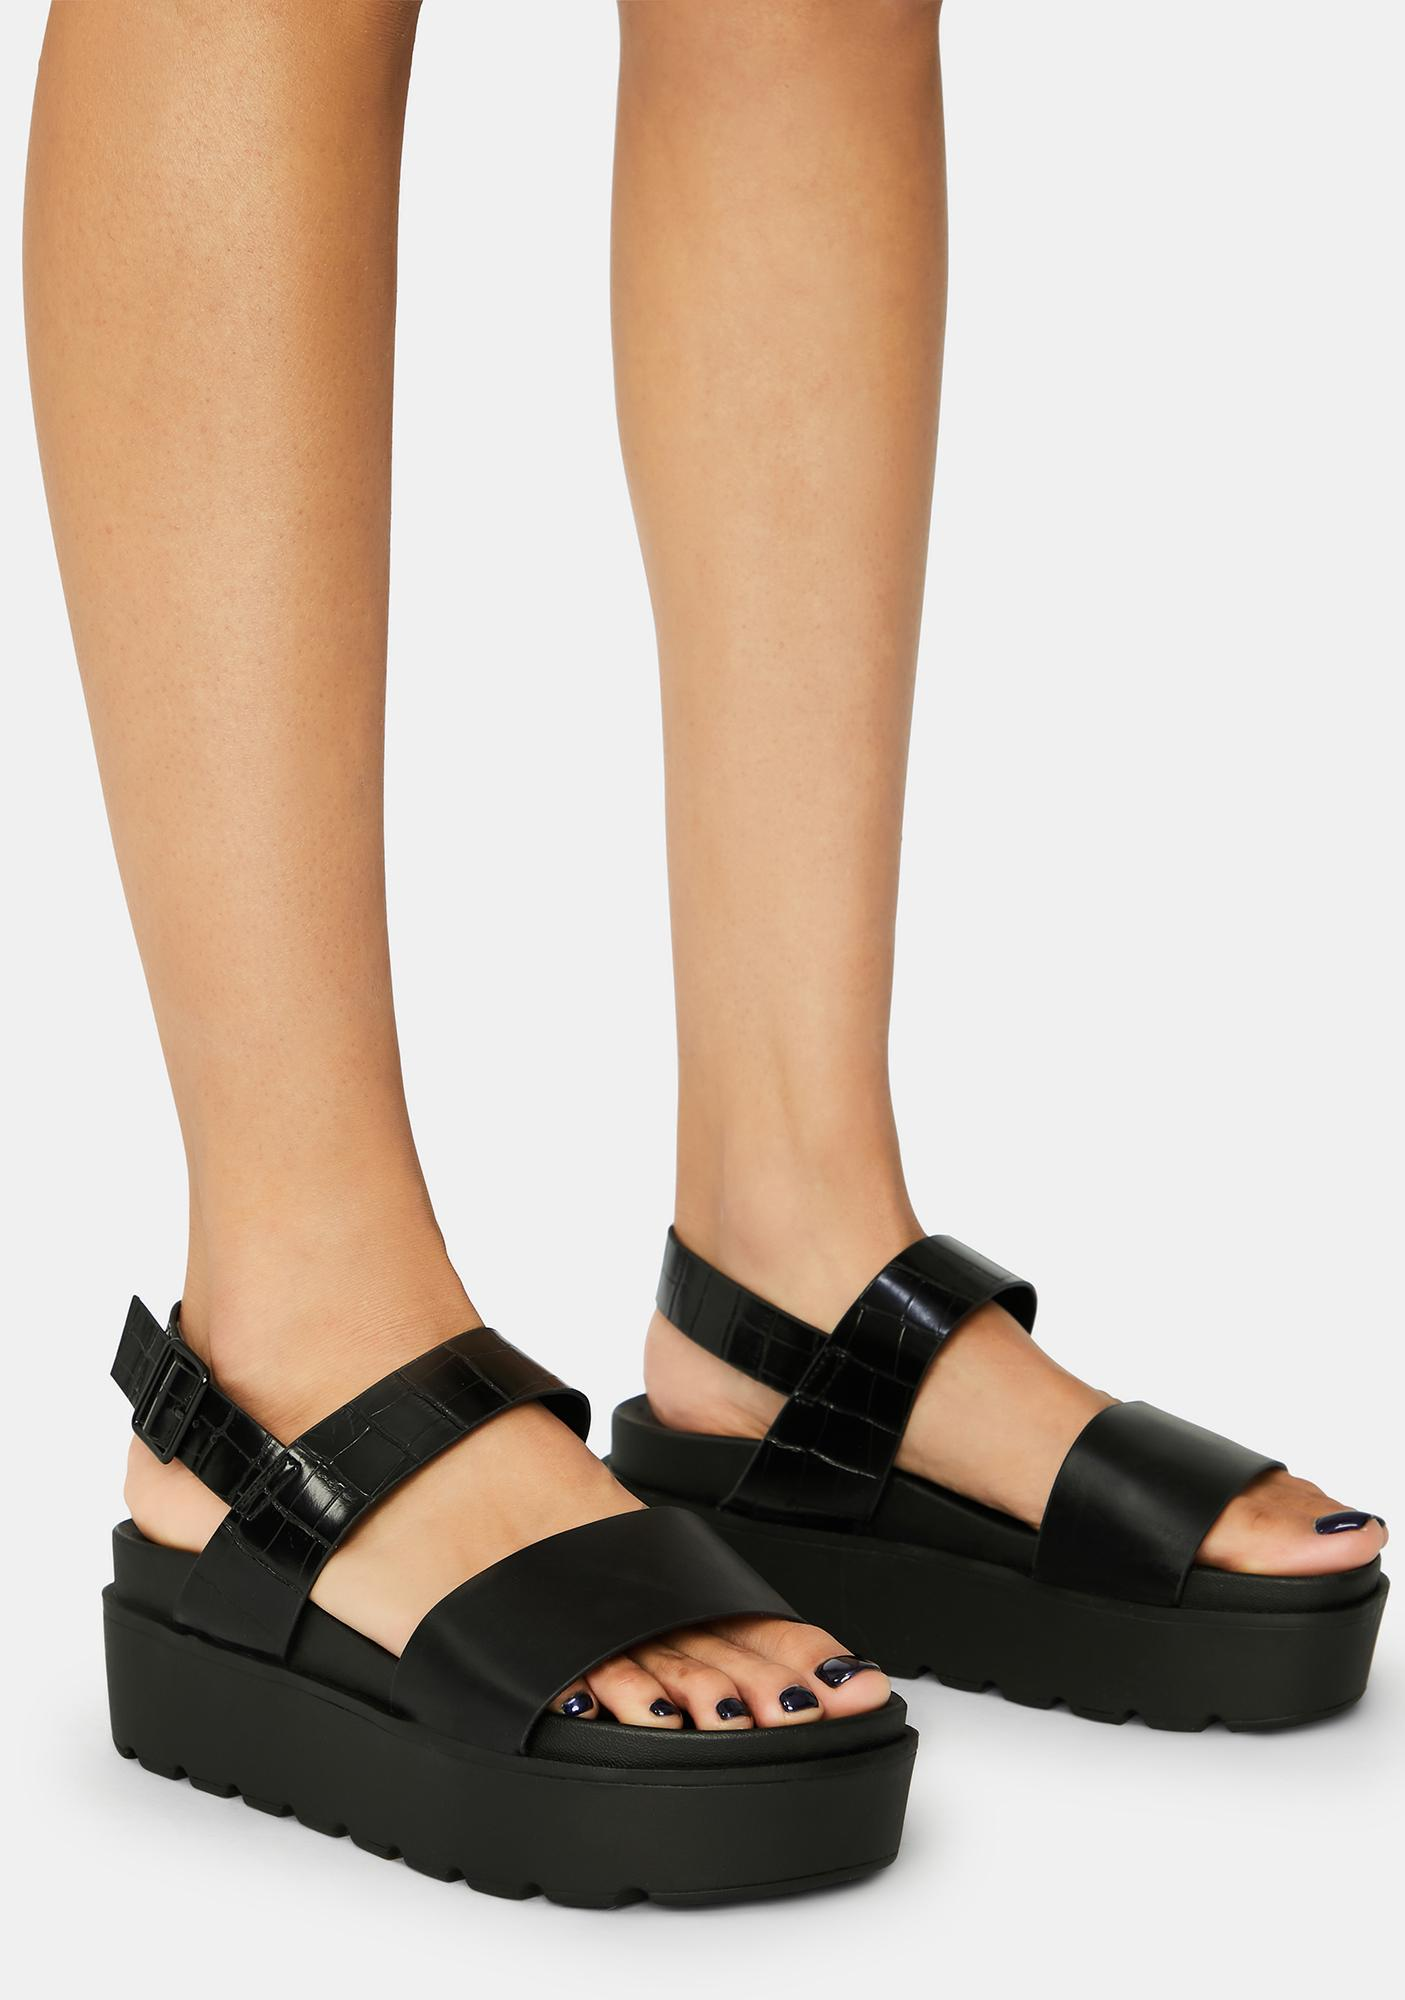 Shadow Lost Without You Platform Sandals